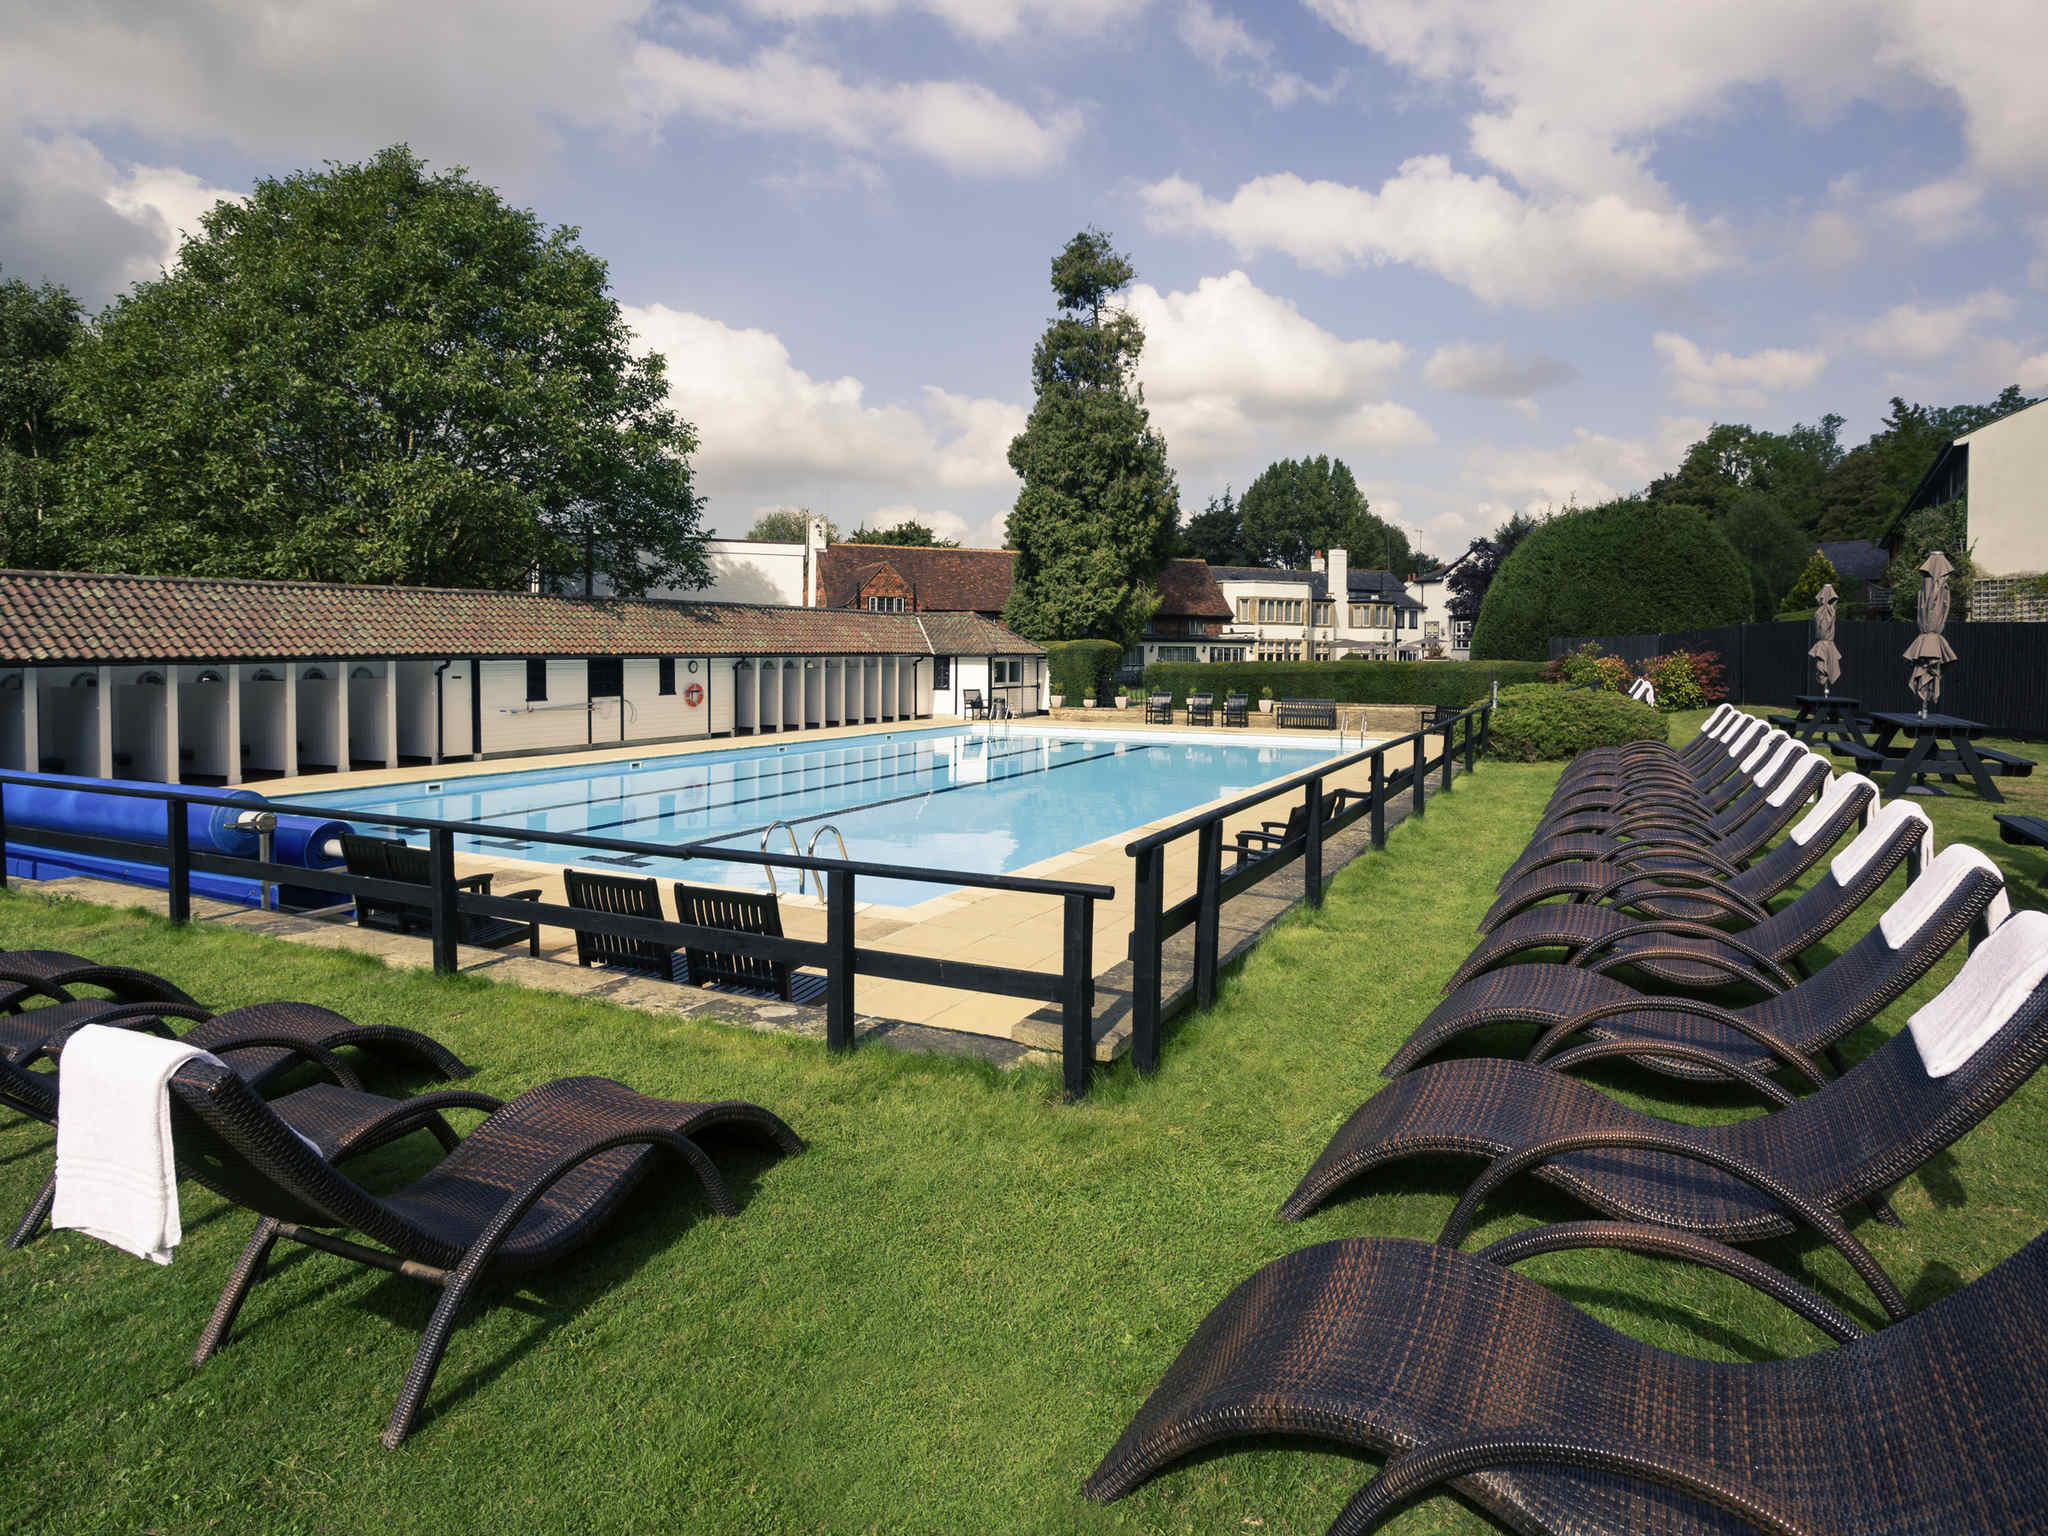 Otel – Mercure Box Hill Burford Bridge Hotel